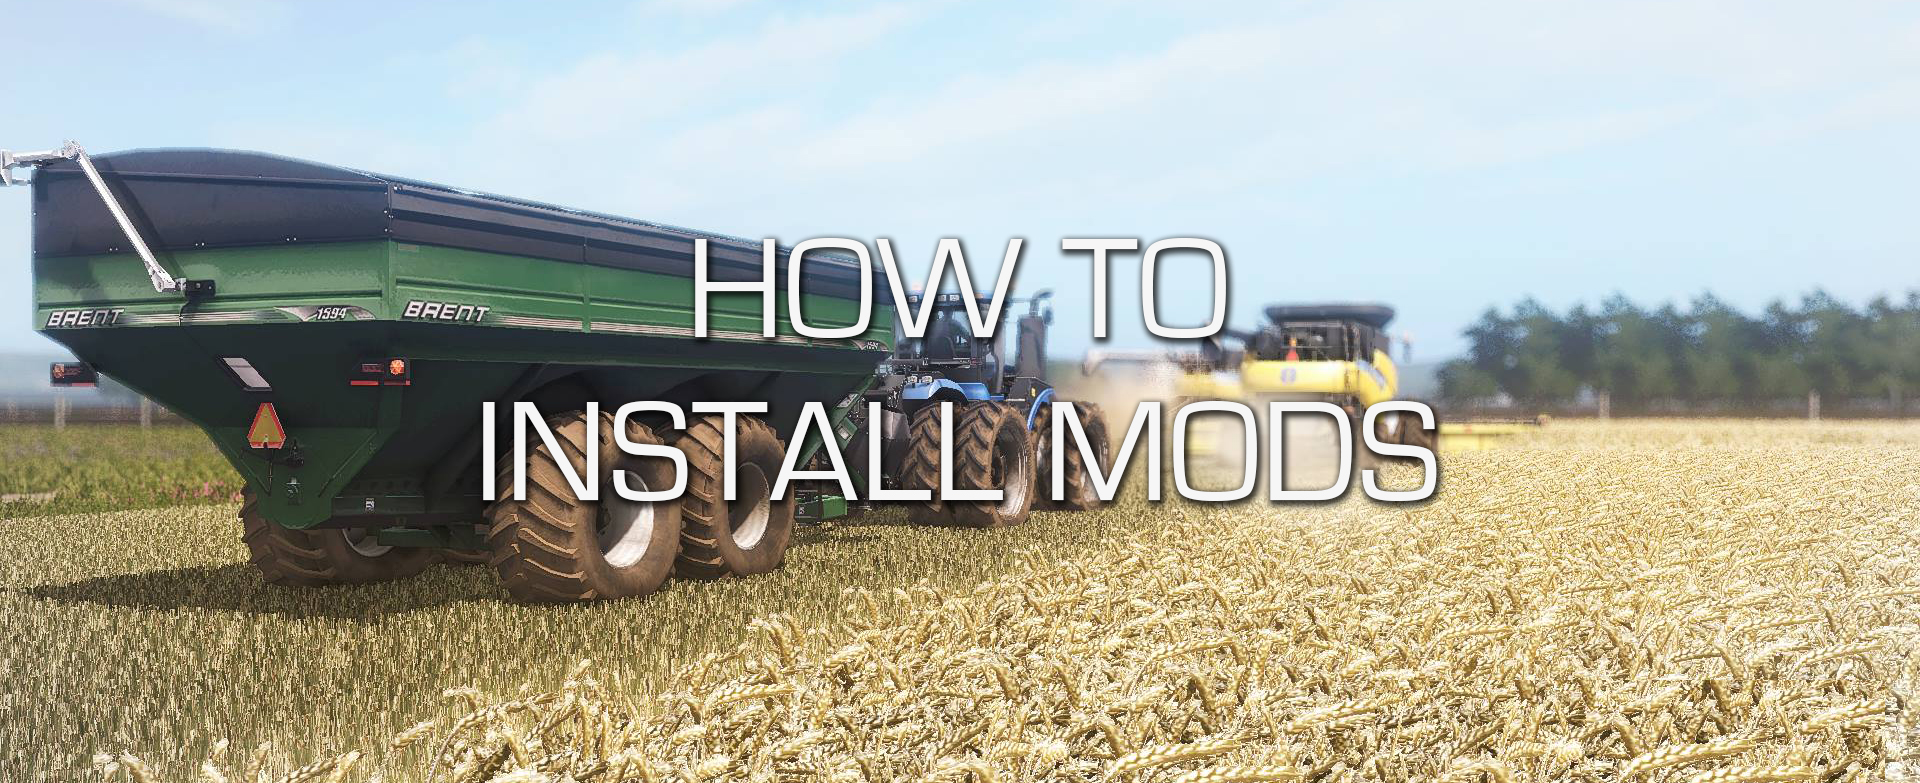 How to Install Mods - Farming Simulator 2019 / 2017 - Download How to Install Mods - Farming Simulator 2019 / 2017 for FREE - Free Cheats for Games